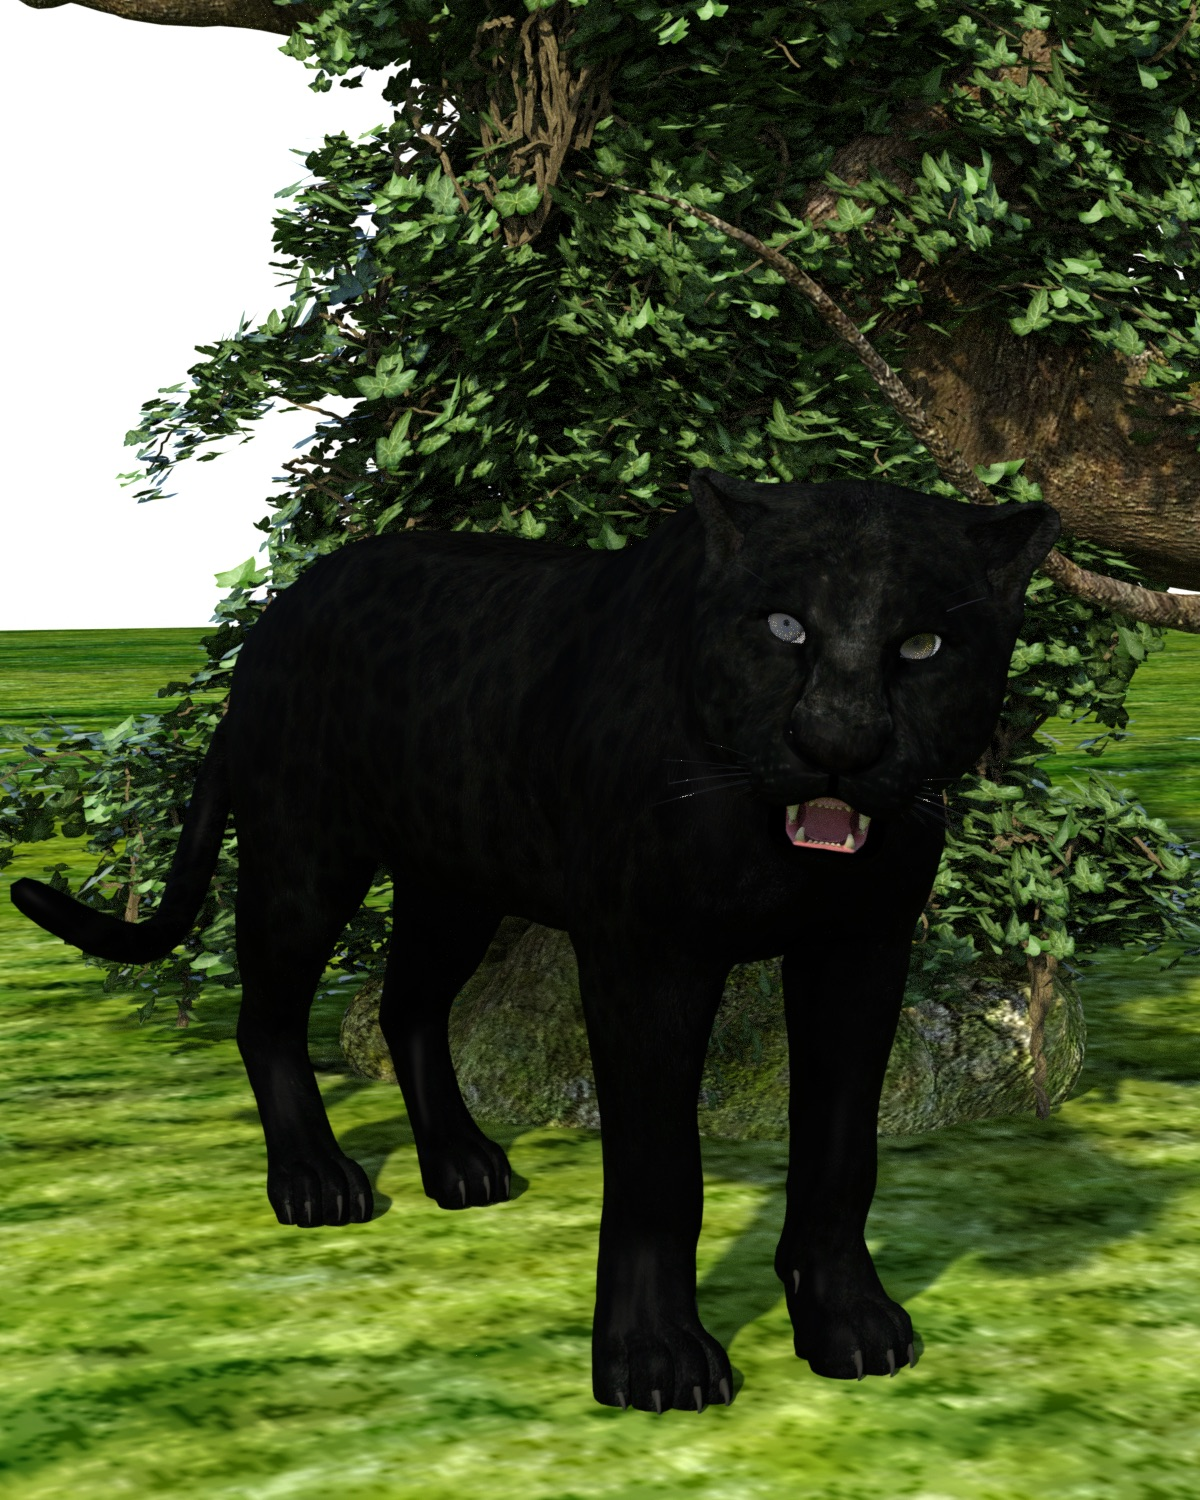 Attempting a panther